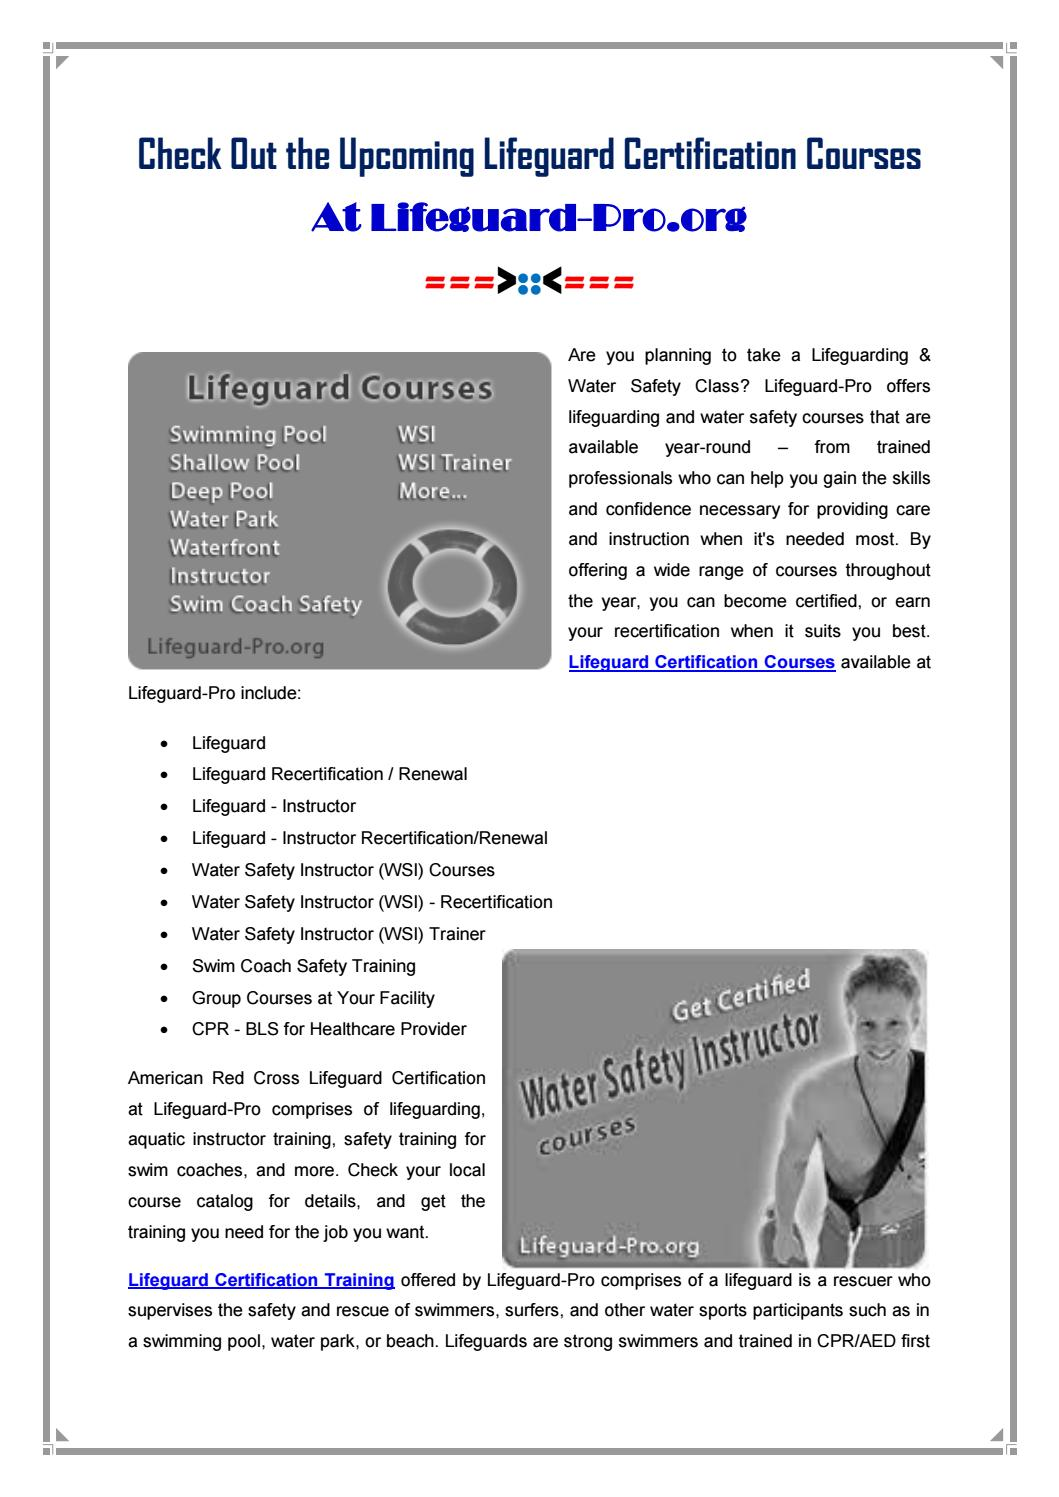 Lifeguard Certification Courses At Lifeguard Pro By Lifeguard